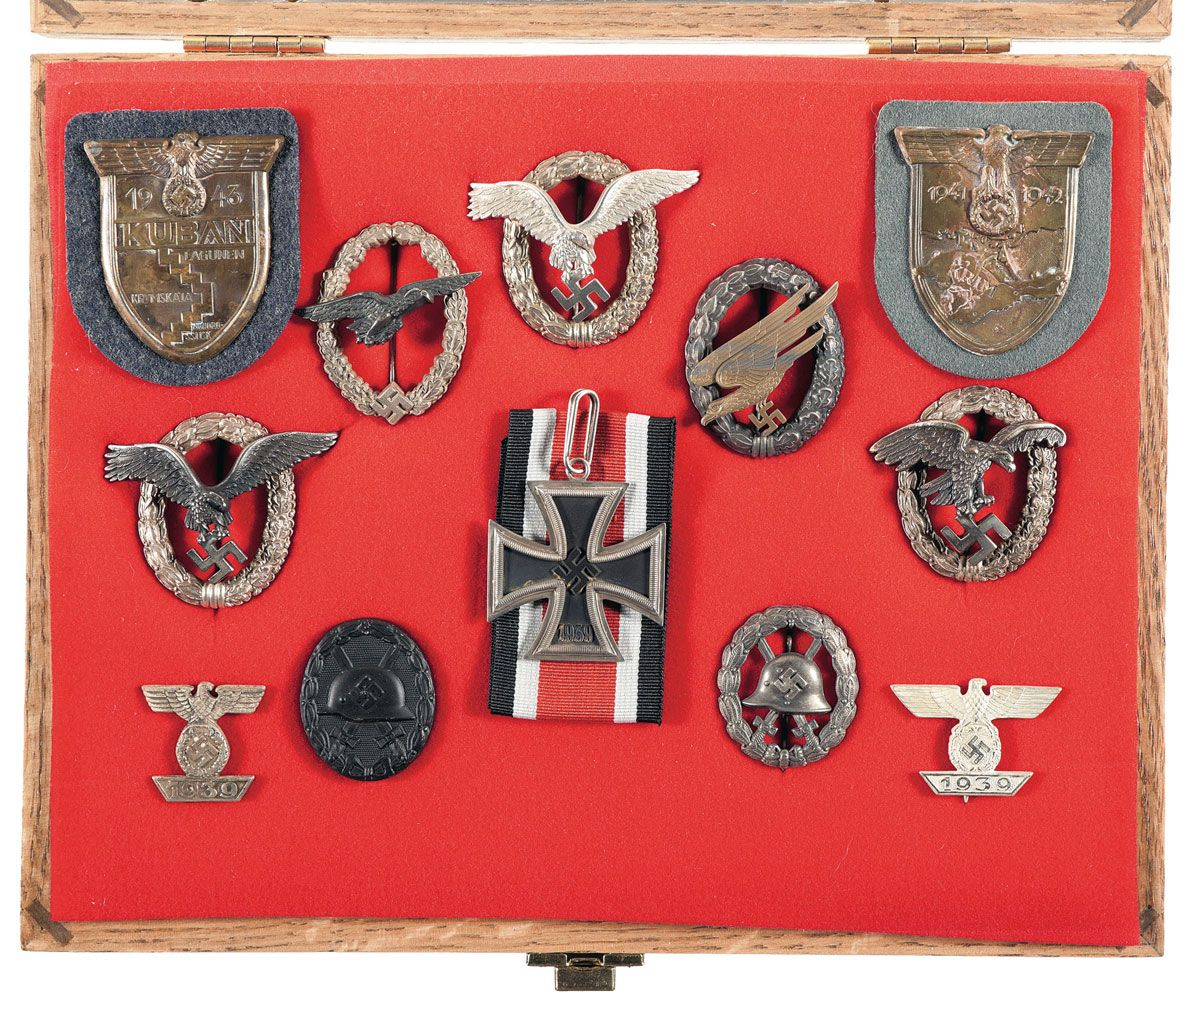 Cased Display of Nazi Badges and Medals